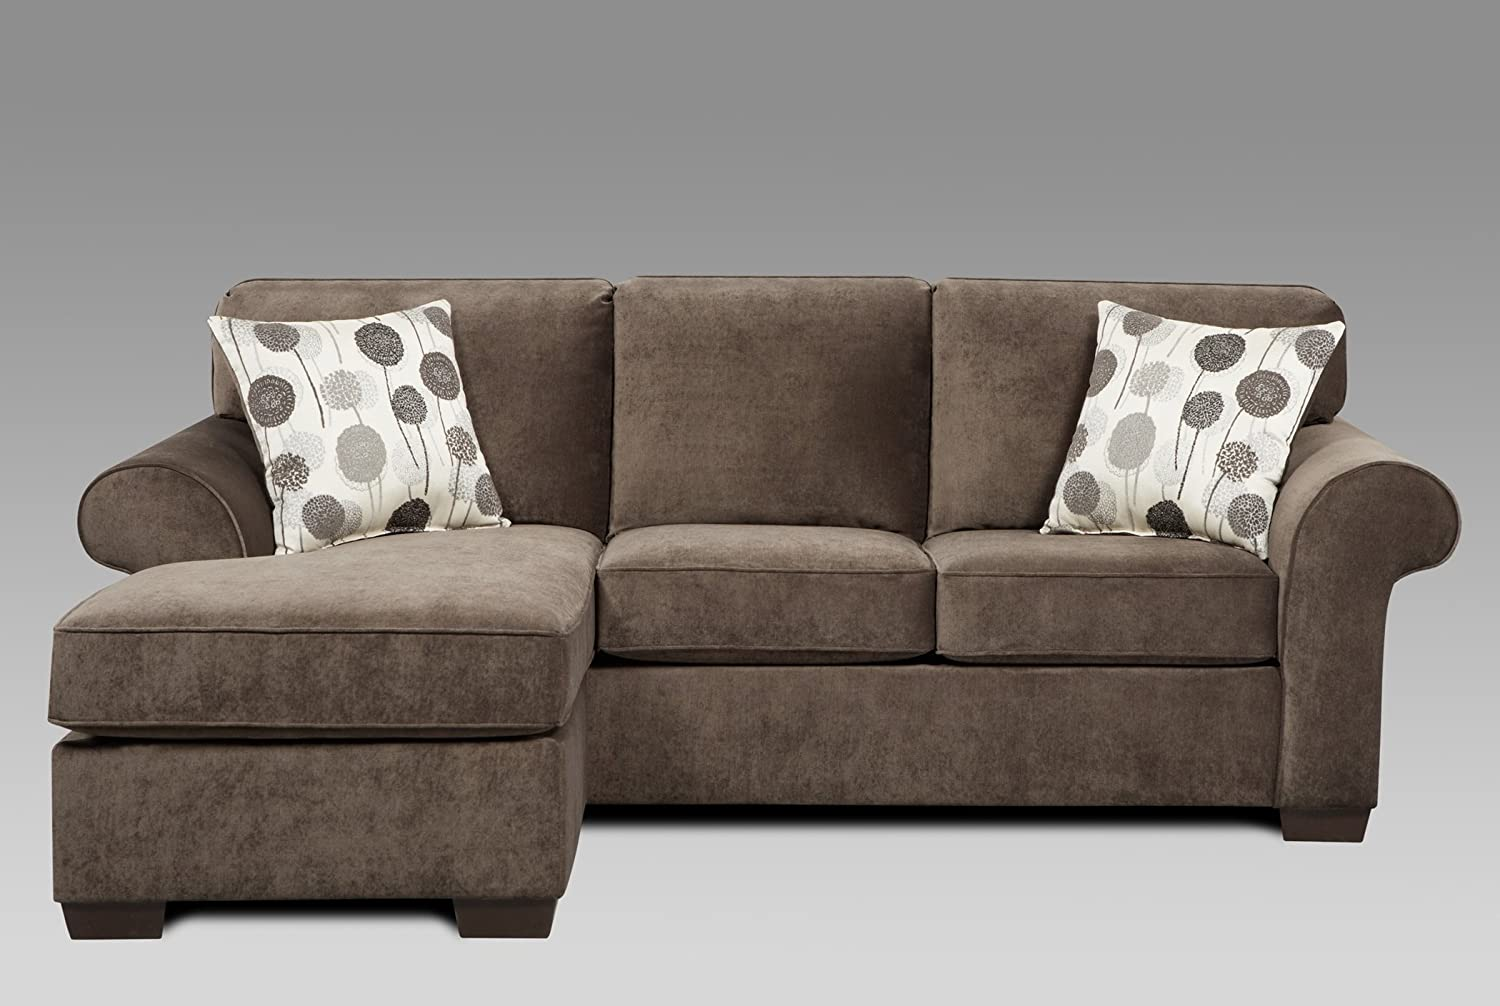 Amazon Com Roundhill Furniture Fabric Sectional Sofa With 2 Pillows Elizabeth Ash Kitchen Dining